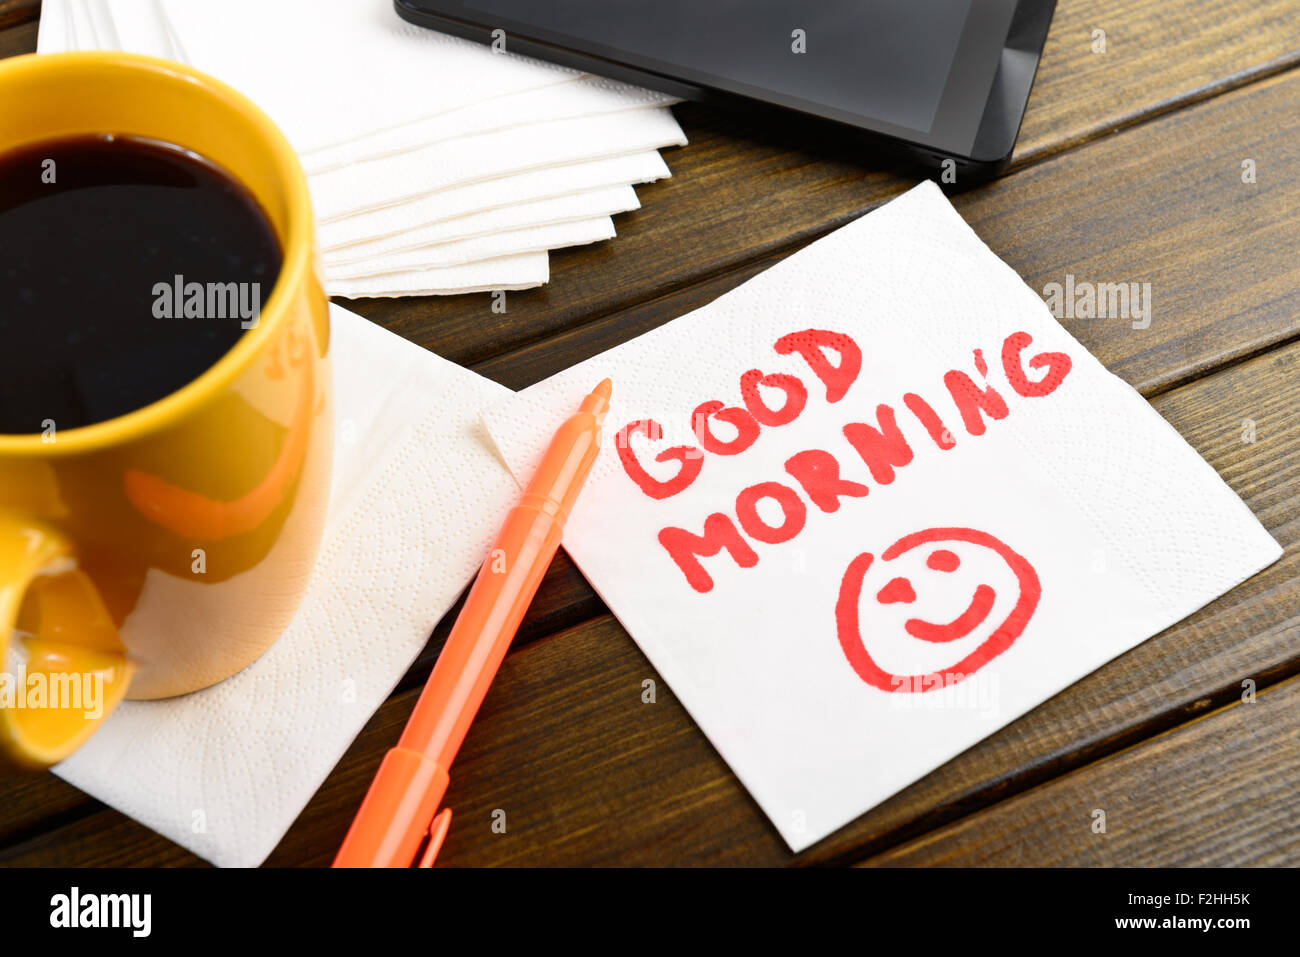 Good morning writing on white napkin around coffee pen and phone on wooden table - Stock Image